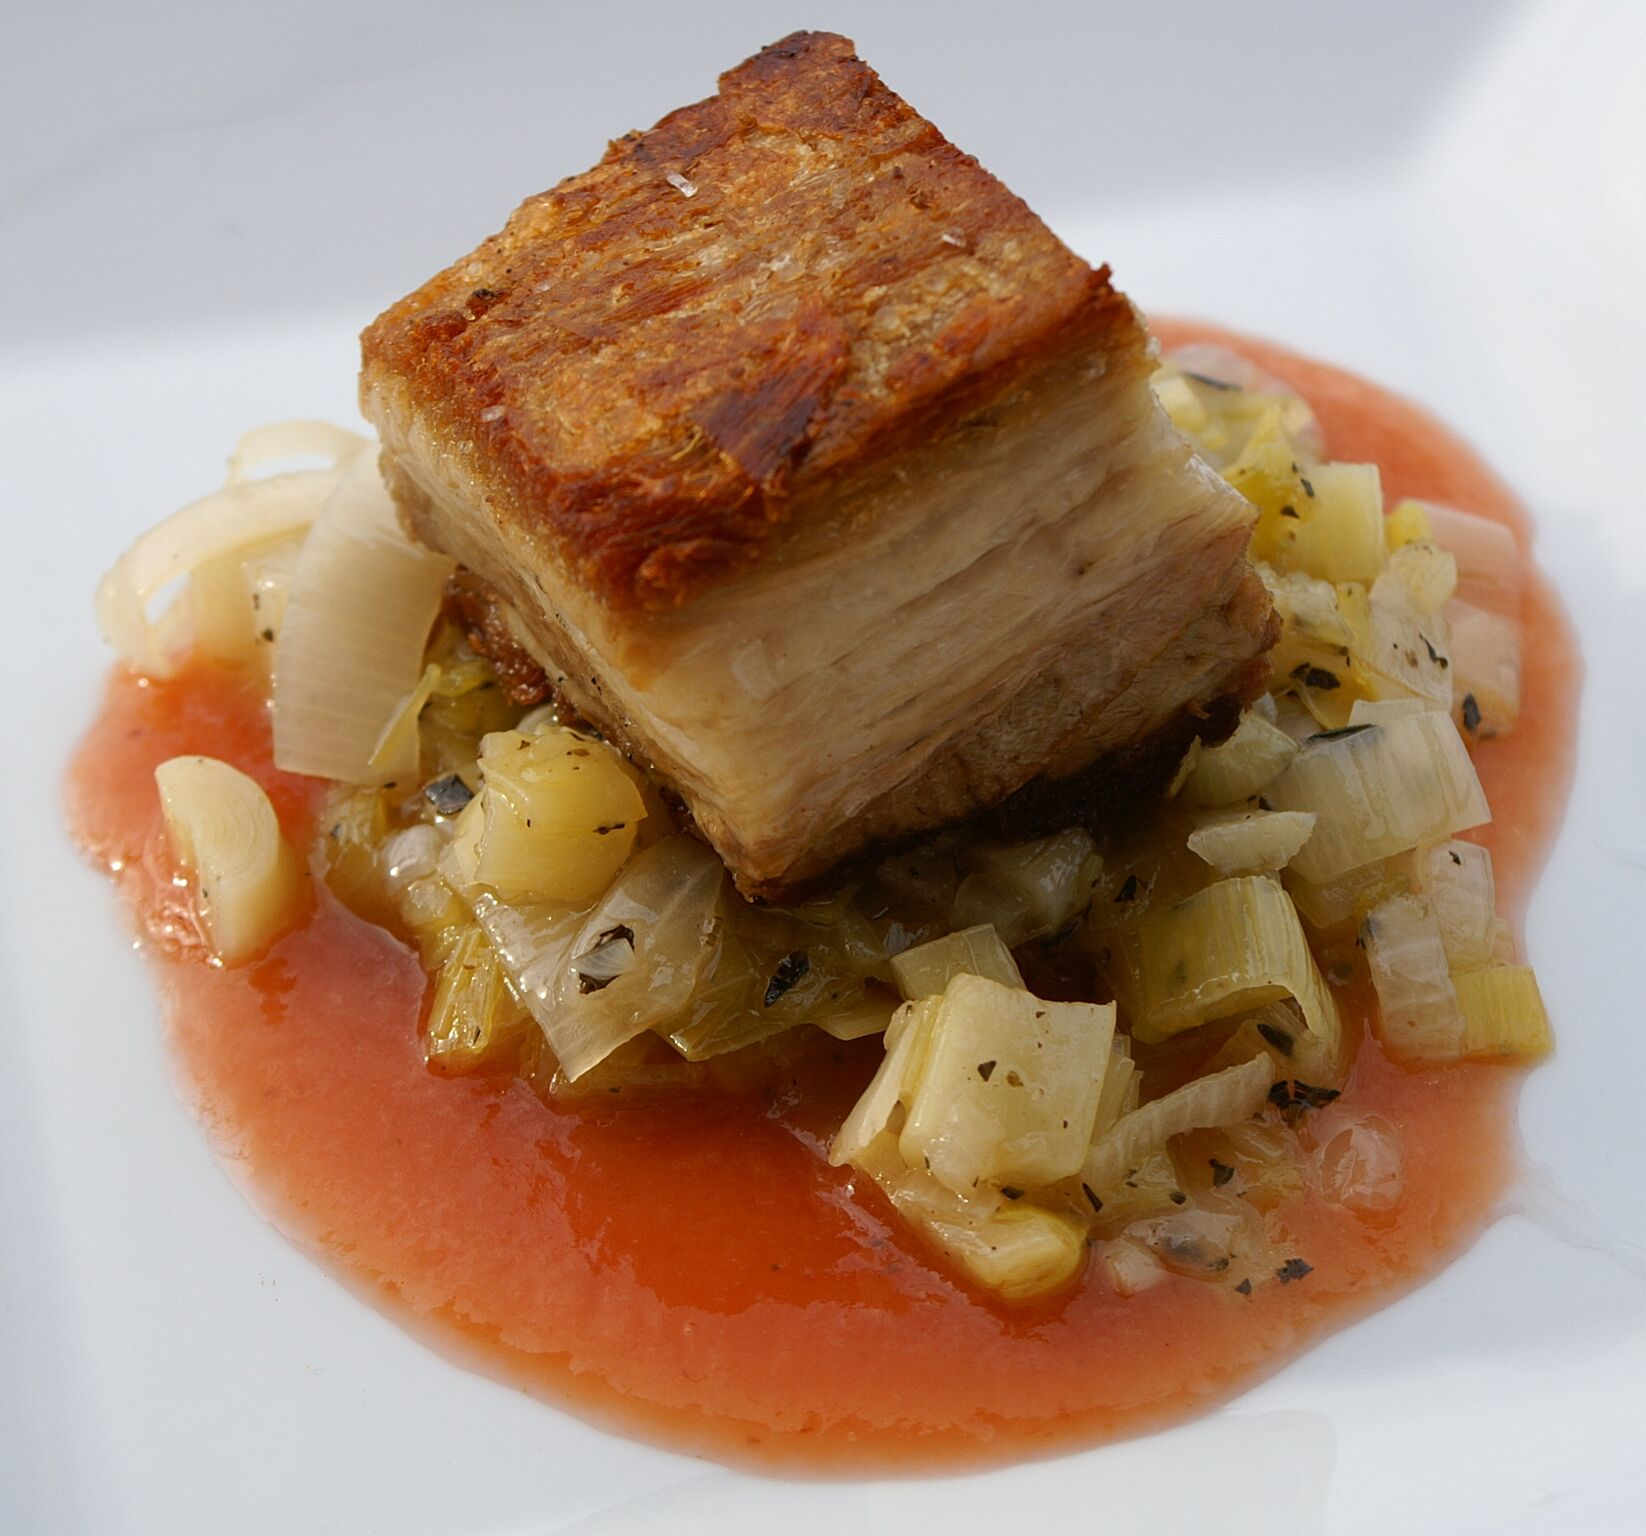 bershire porkbelly-Michelle Baker_preview.jpeg